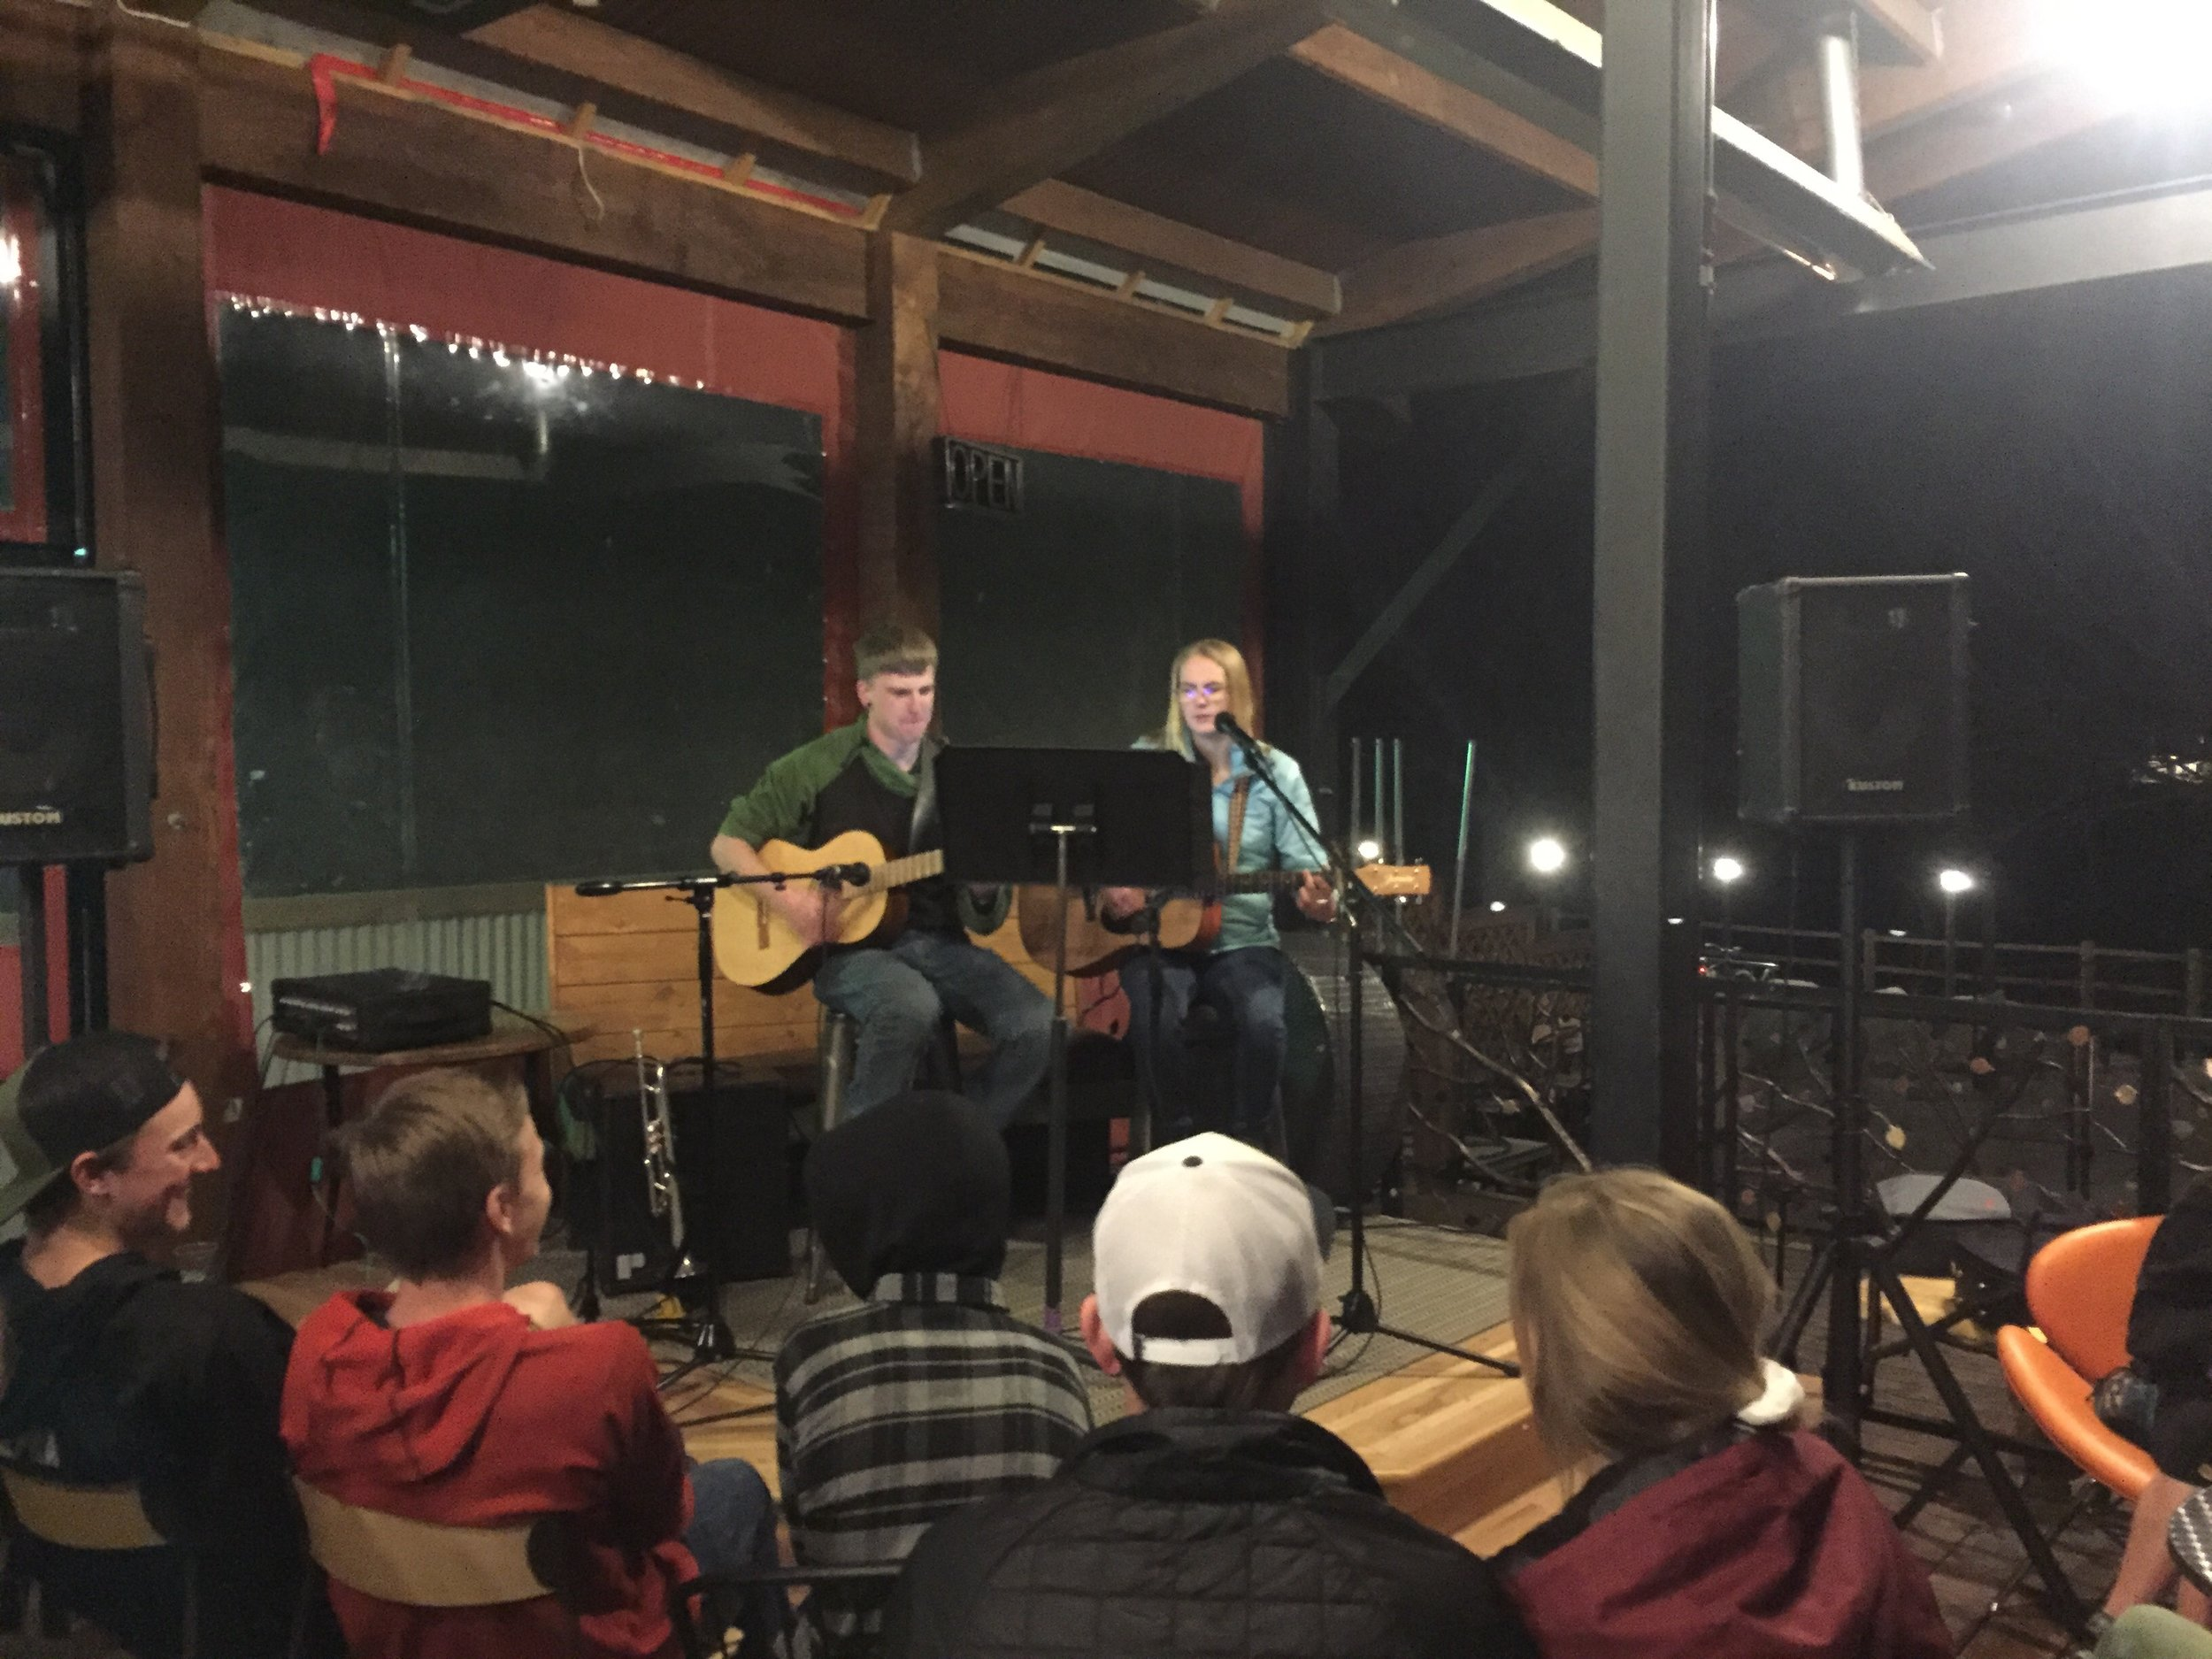 Jacob and Vasey perform in front of a large crowd at the first PfCA Teen Night at Seasons Cafe on February 1st. Photo by Andre Wilkins.